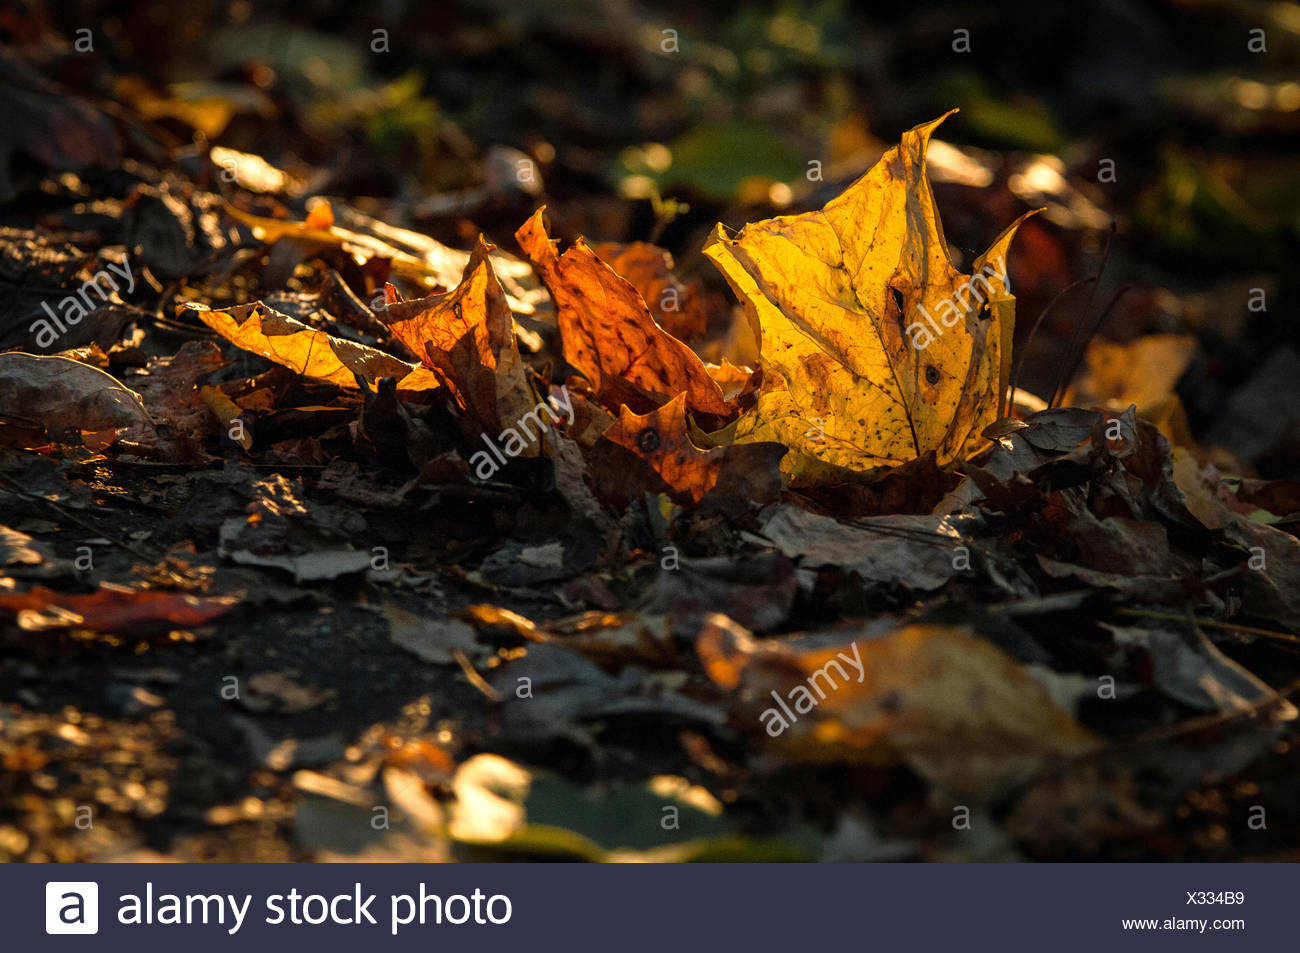 Sunlight shines on leaves on the ground. - Stock Image